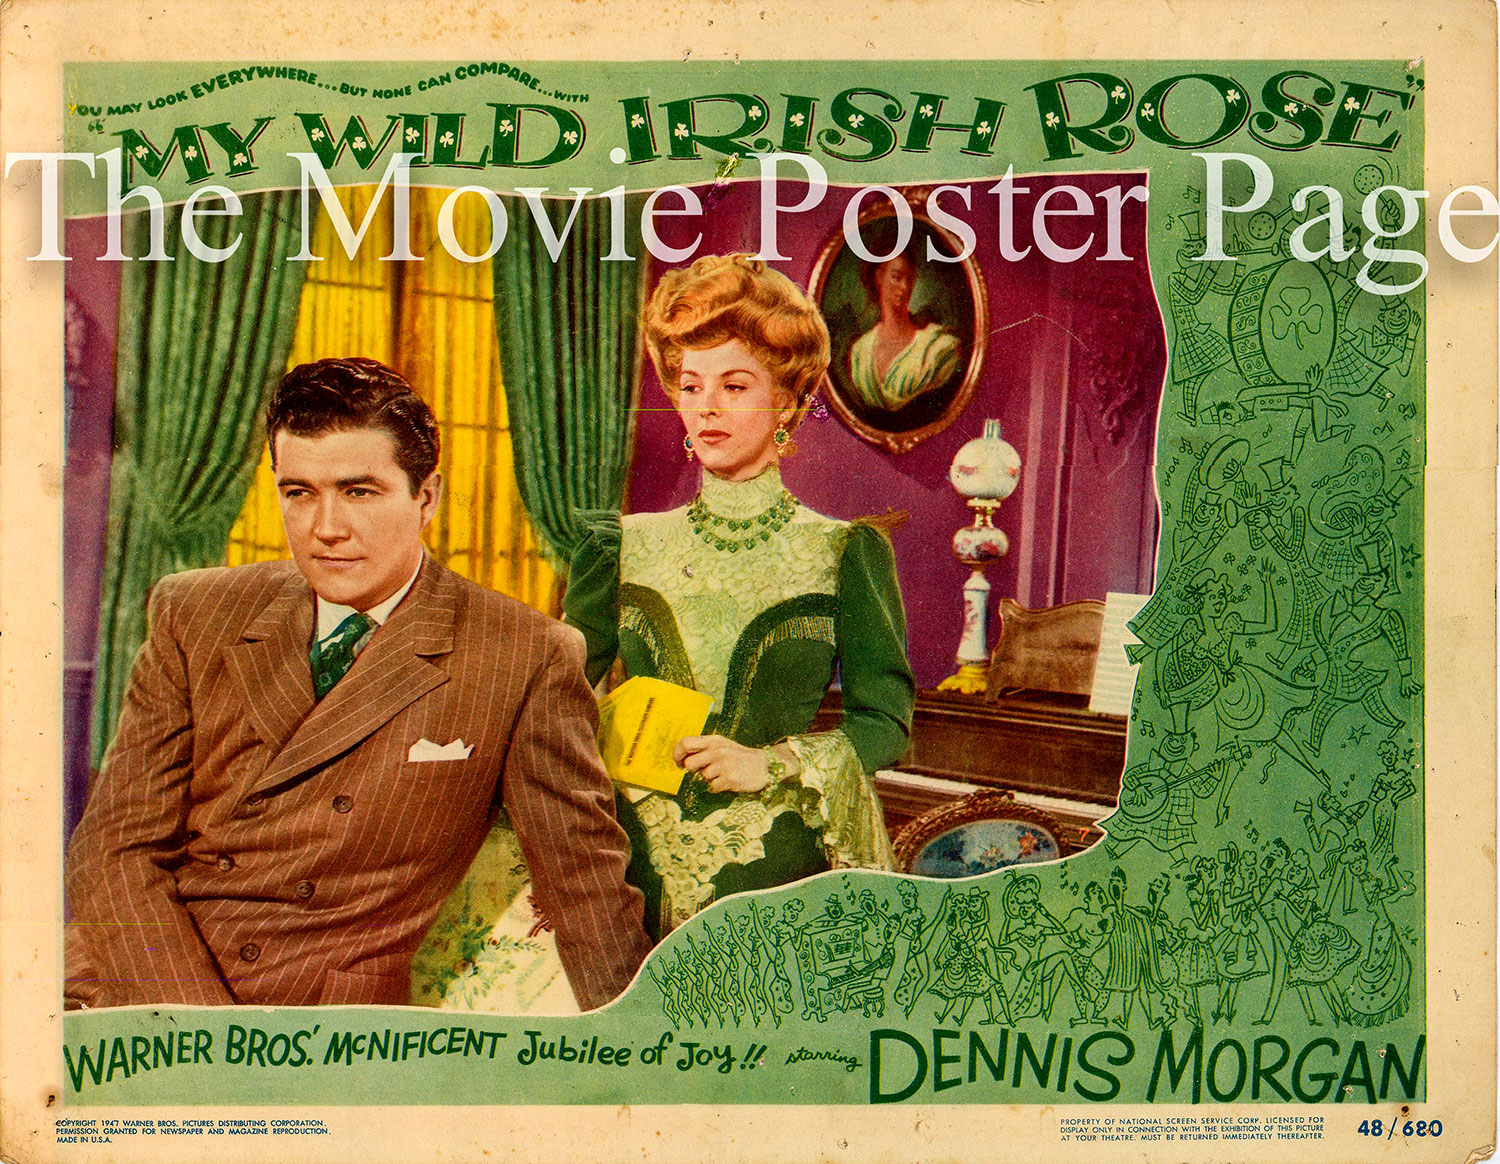 Pictured is a US lobby card for the 1948 David Butler film My Wild Irish Rose starring Dennis Morgan and Arlene Dahl.